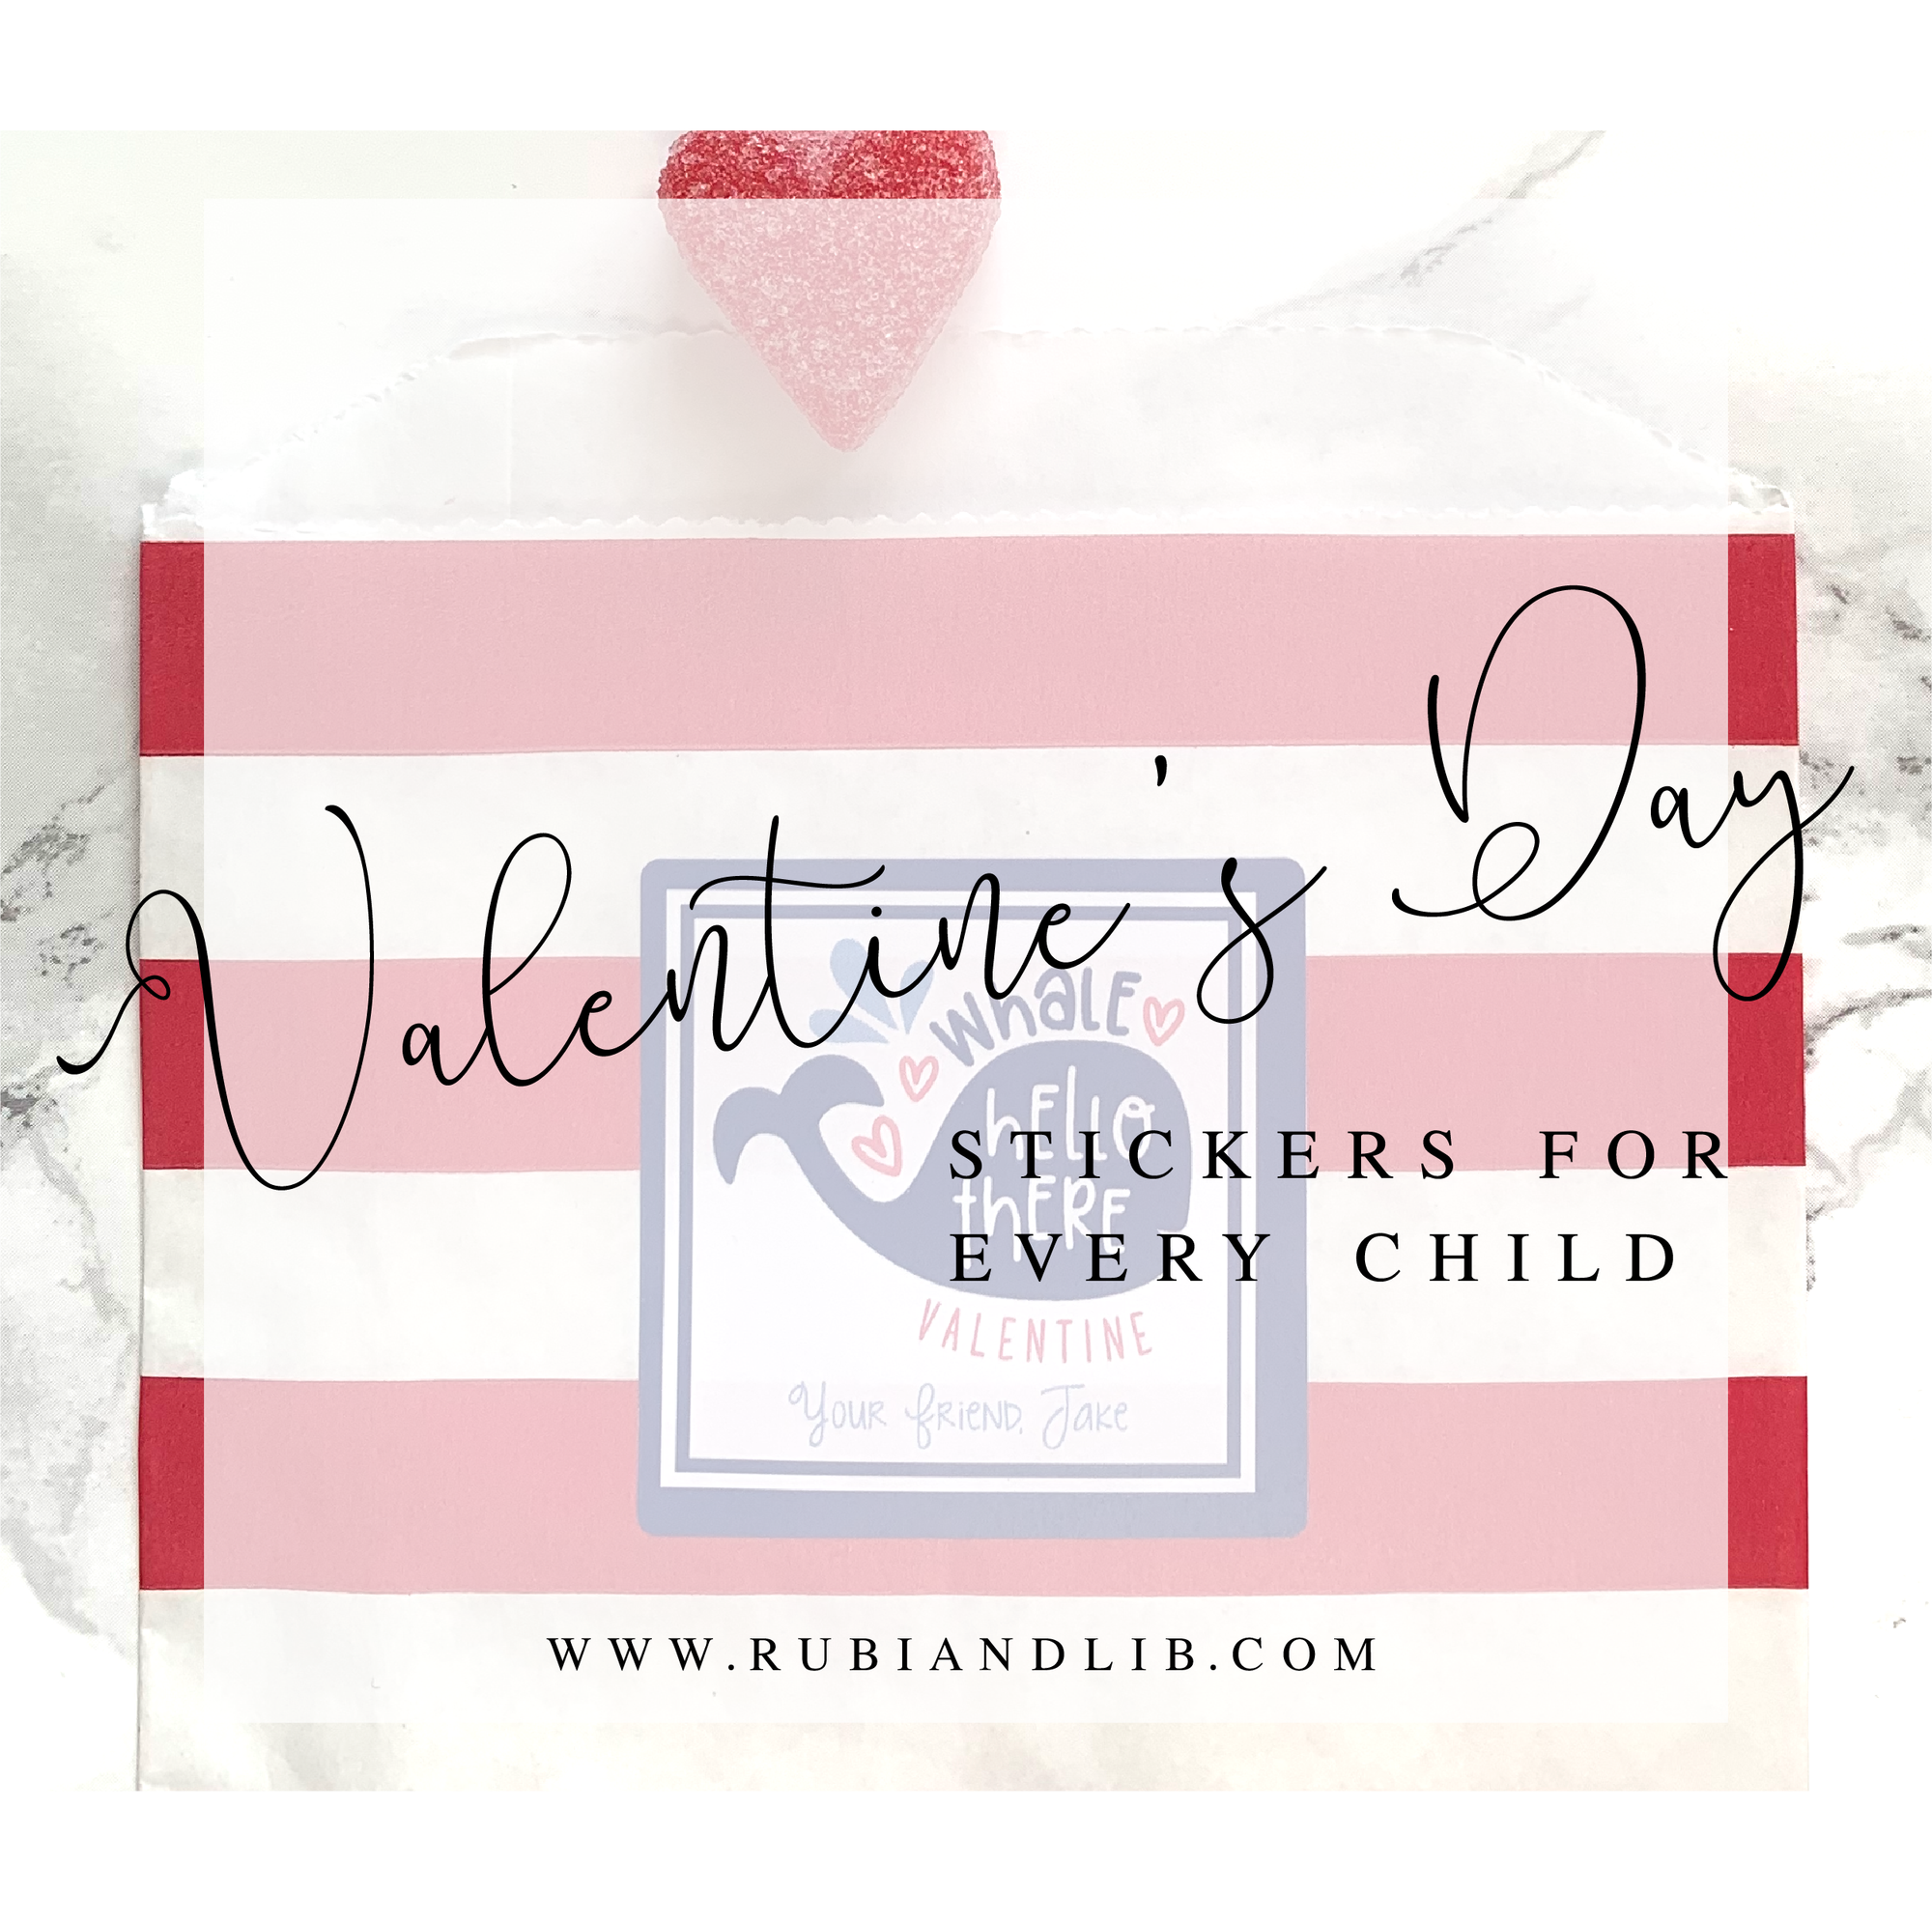 Valentine's Day Stickers for Every Child